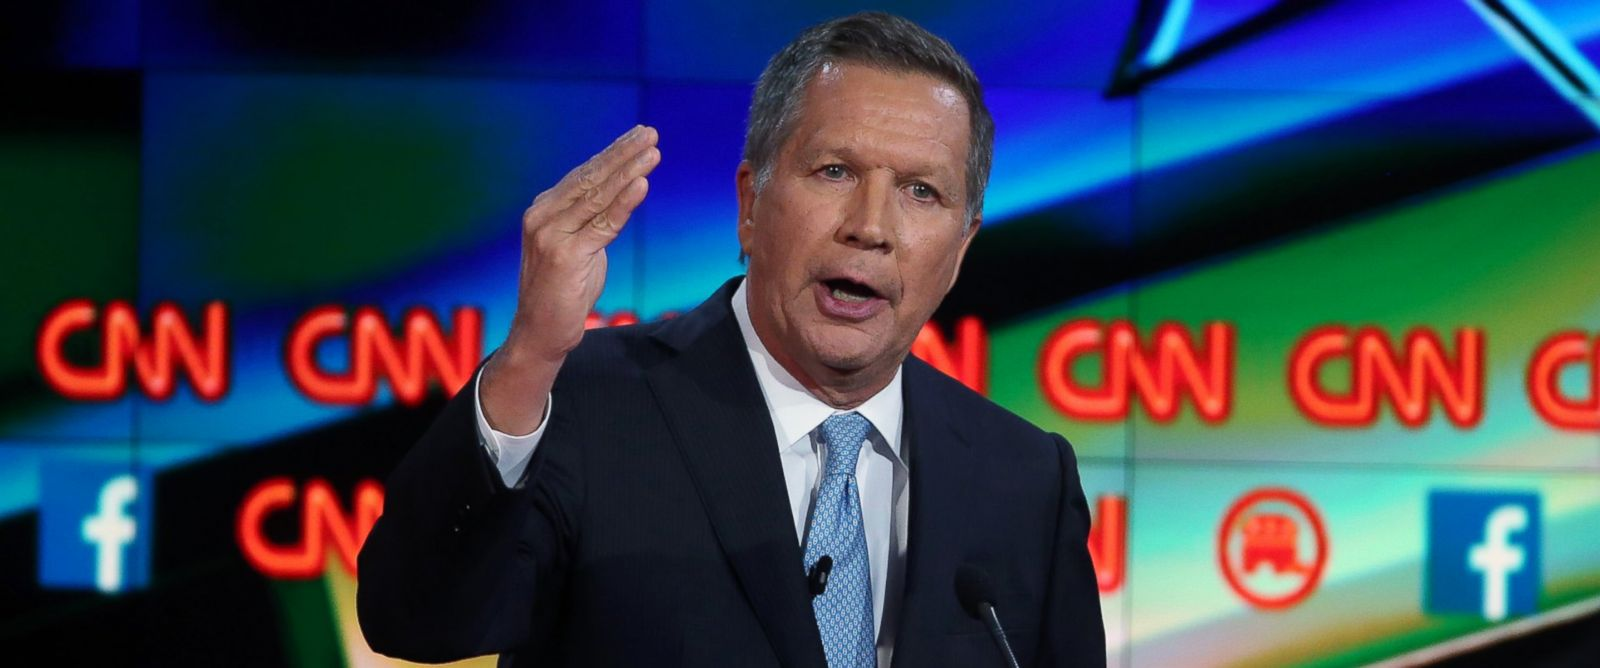 PHOTO: Republican presidential candidate Ohio Gov. John Kasich speaks during the CNN Republican presidential debate, Dec. 15, 2015 in Las Vegas.